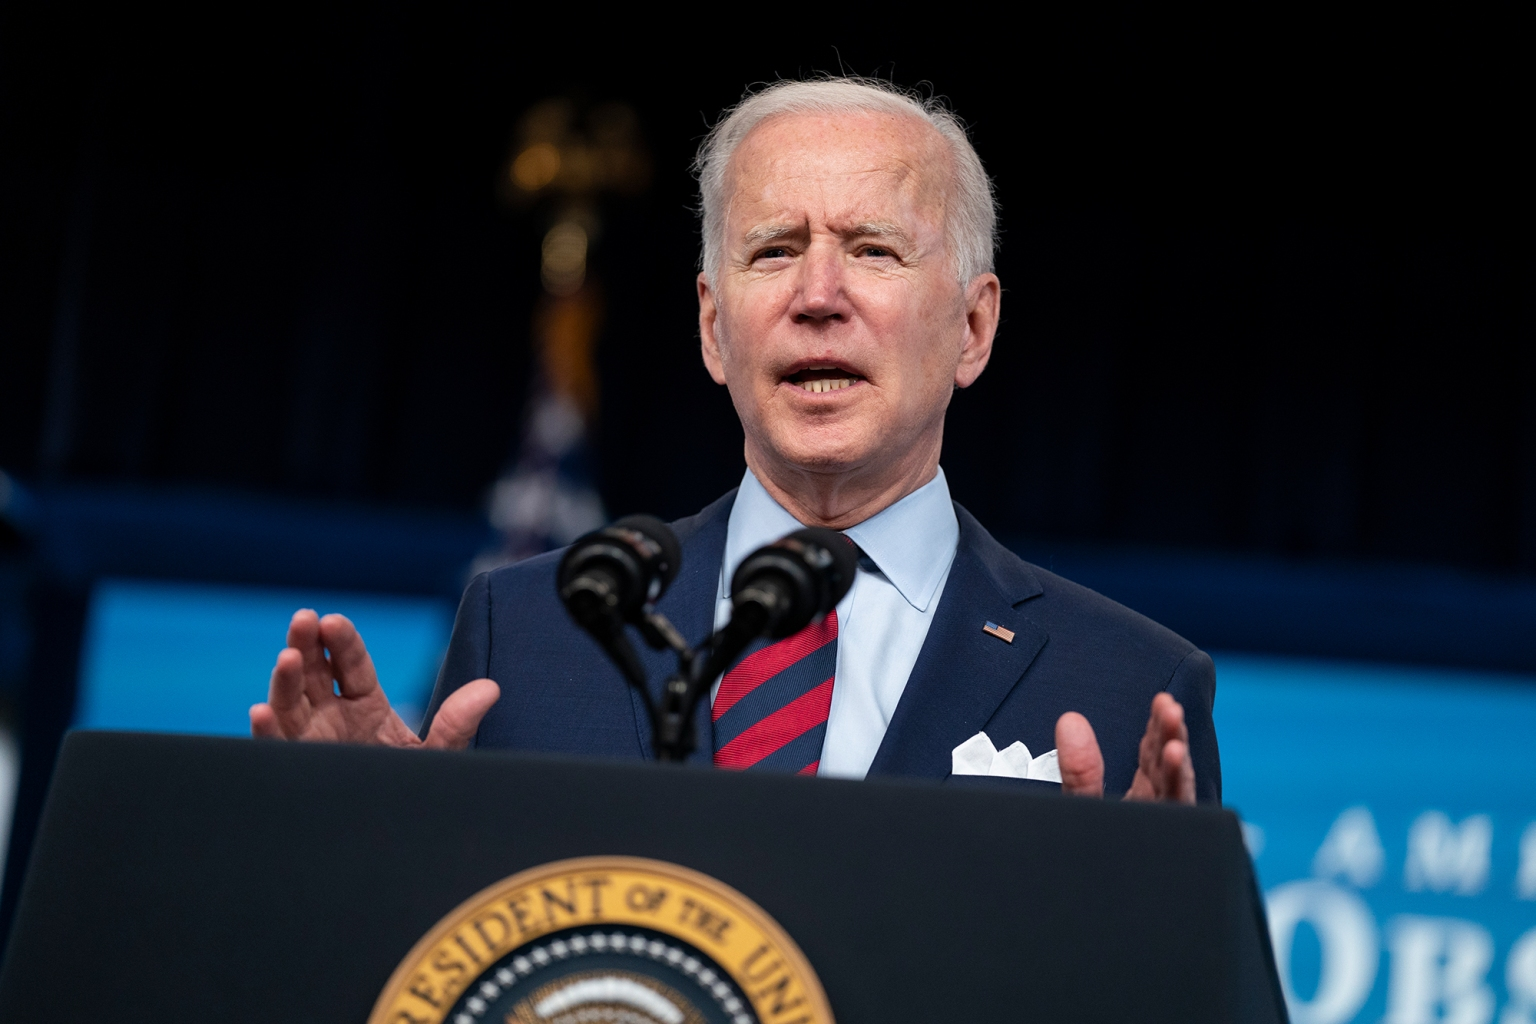 President Biden to announce withdrawal of US troops from Afghanistan by September 11